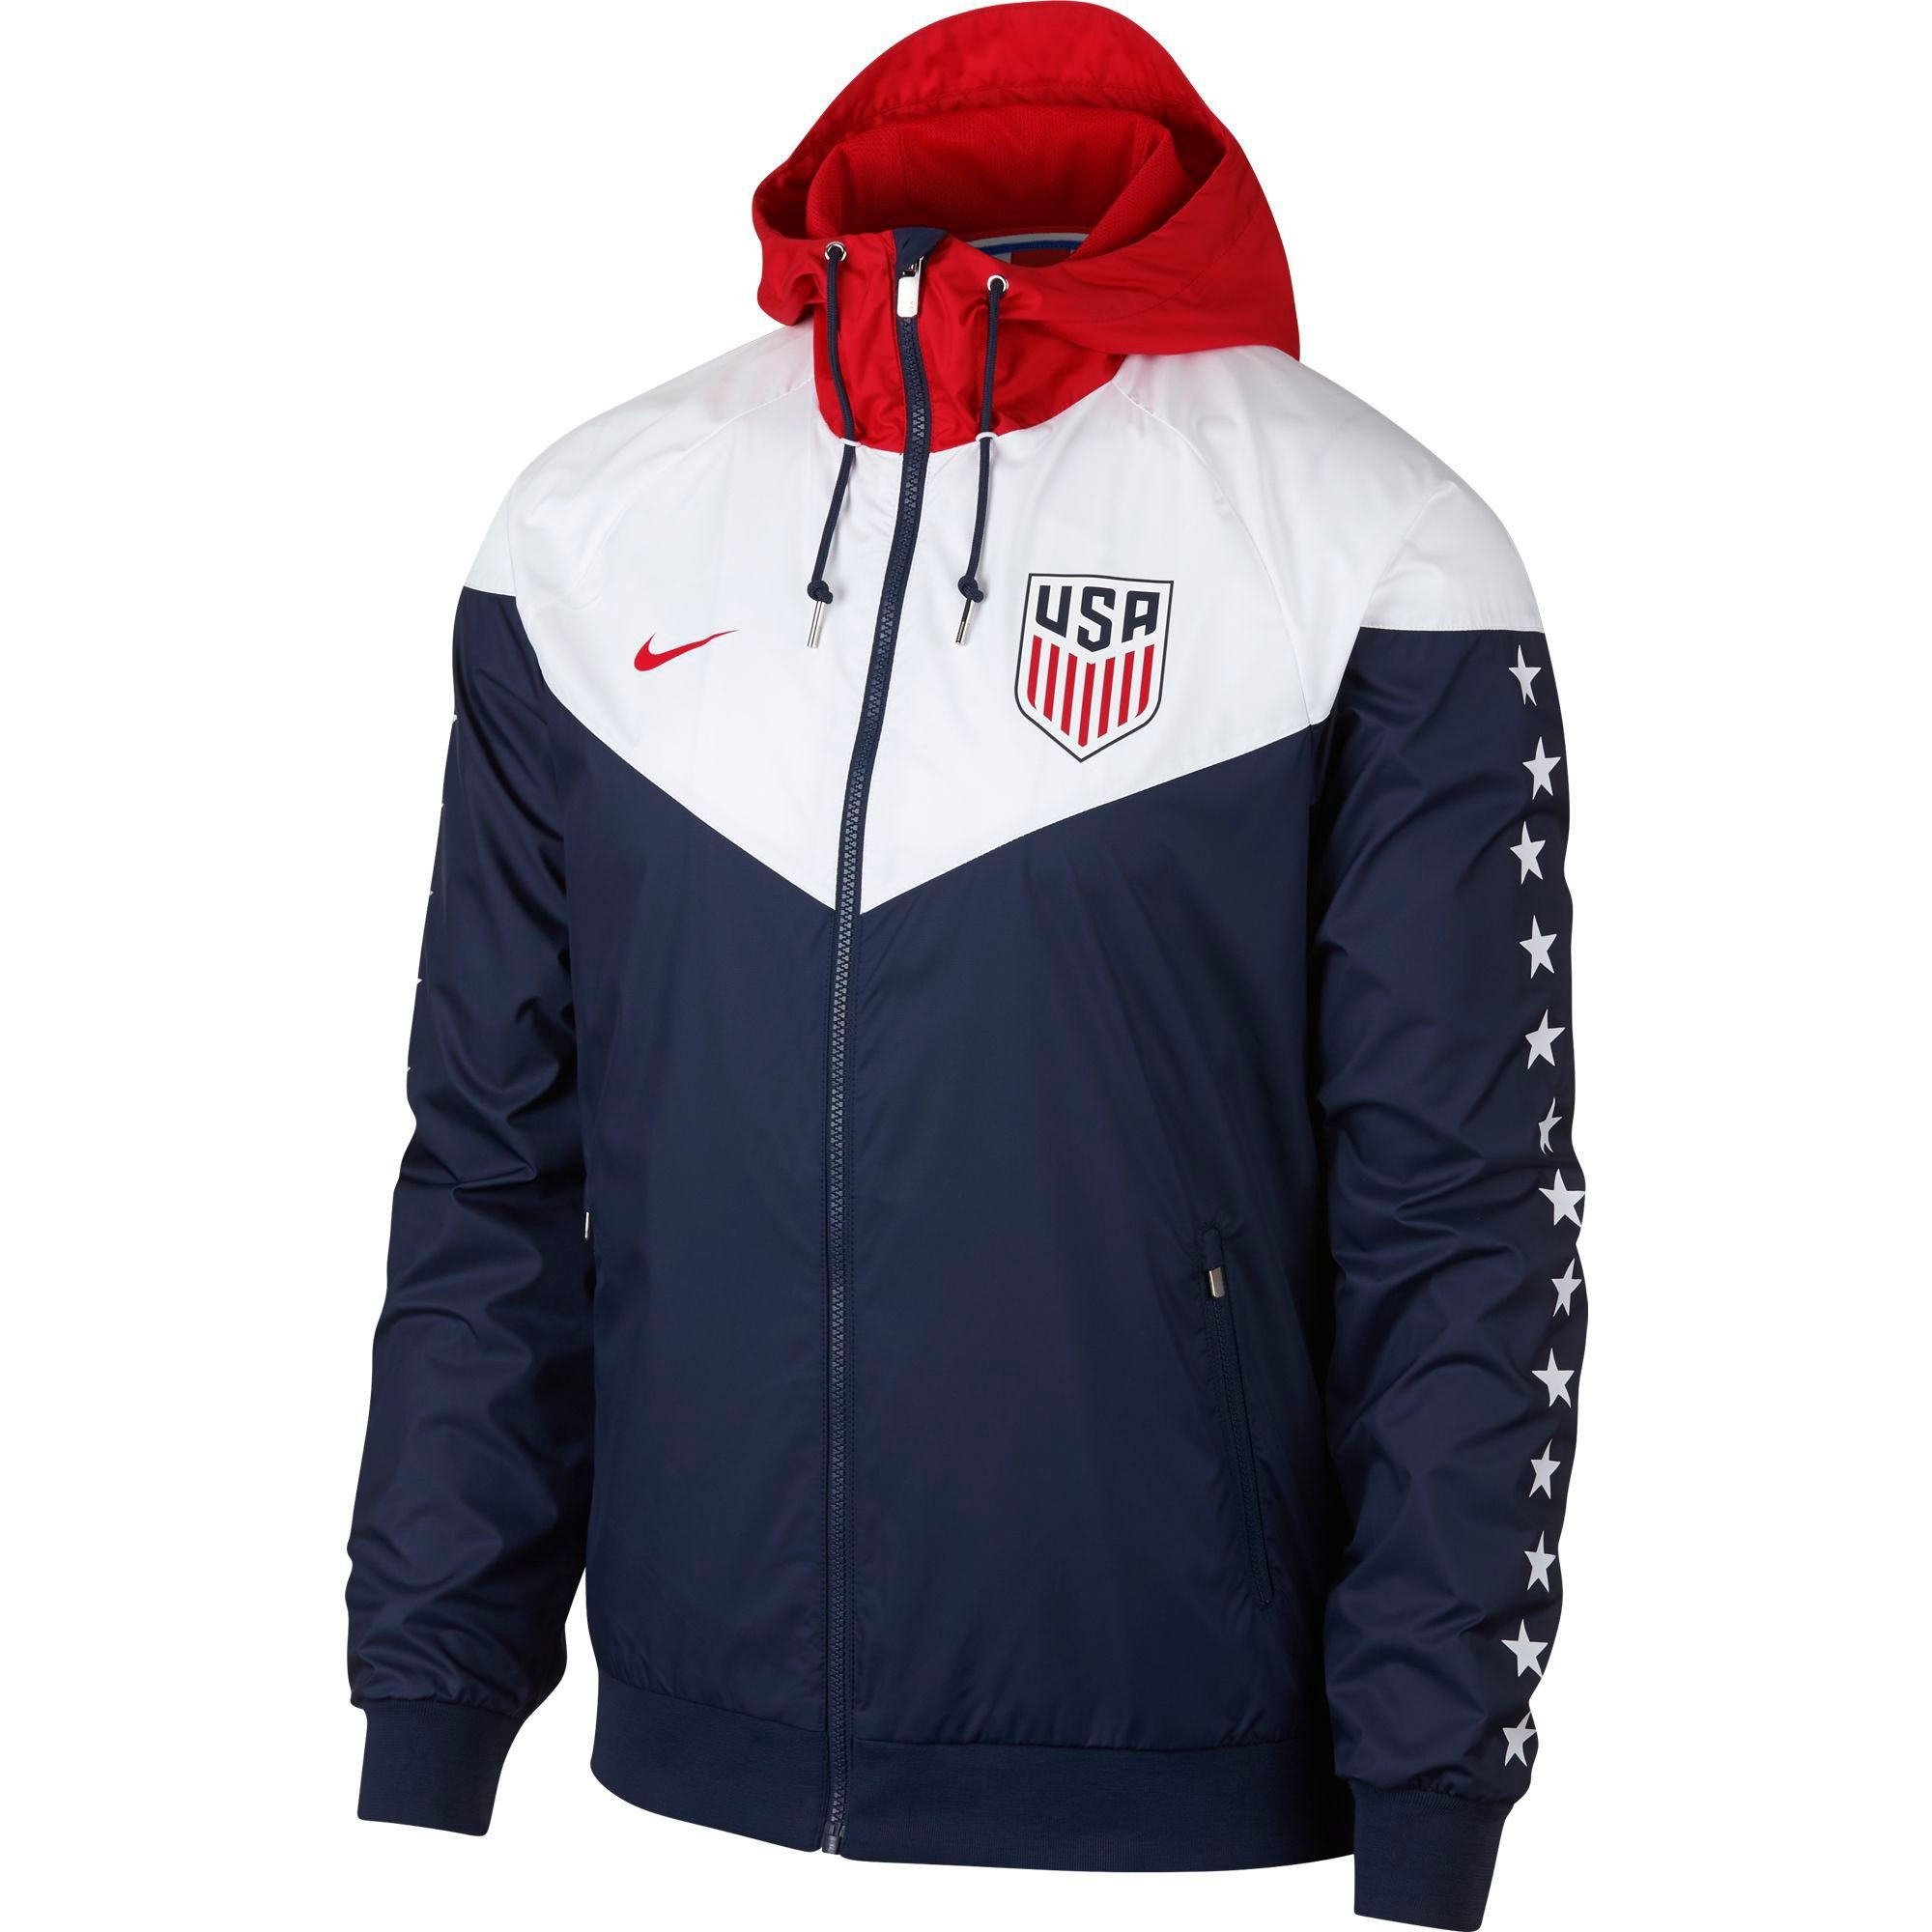 Nike Men s Sportswear USA Windrunner Jacket c1e9afa87